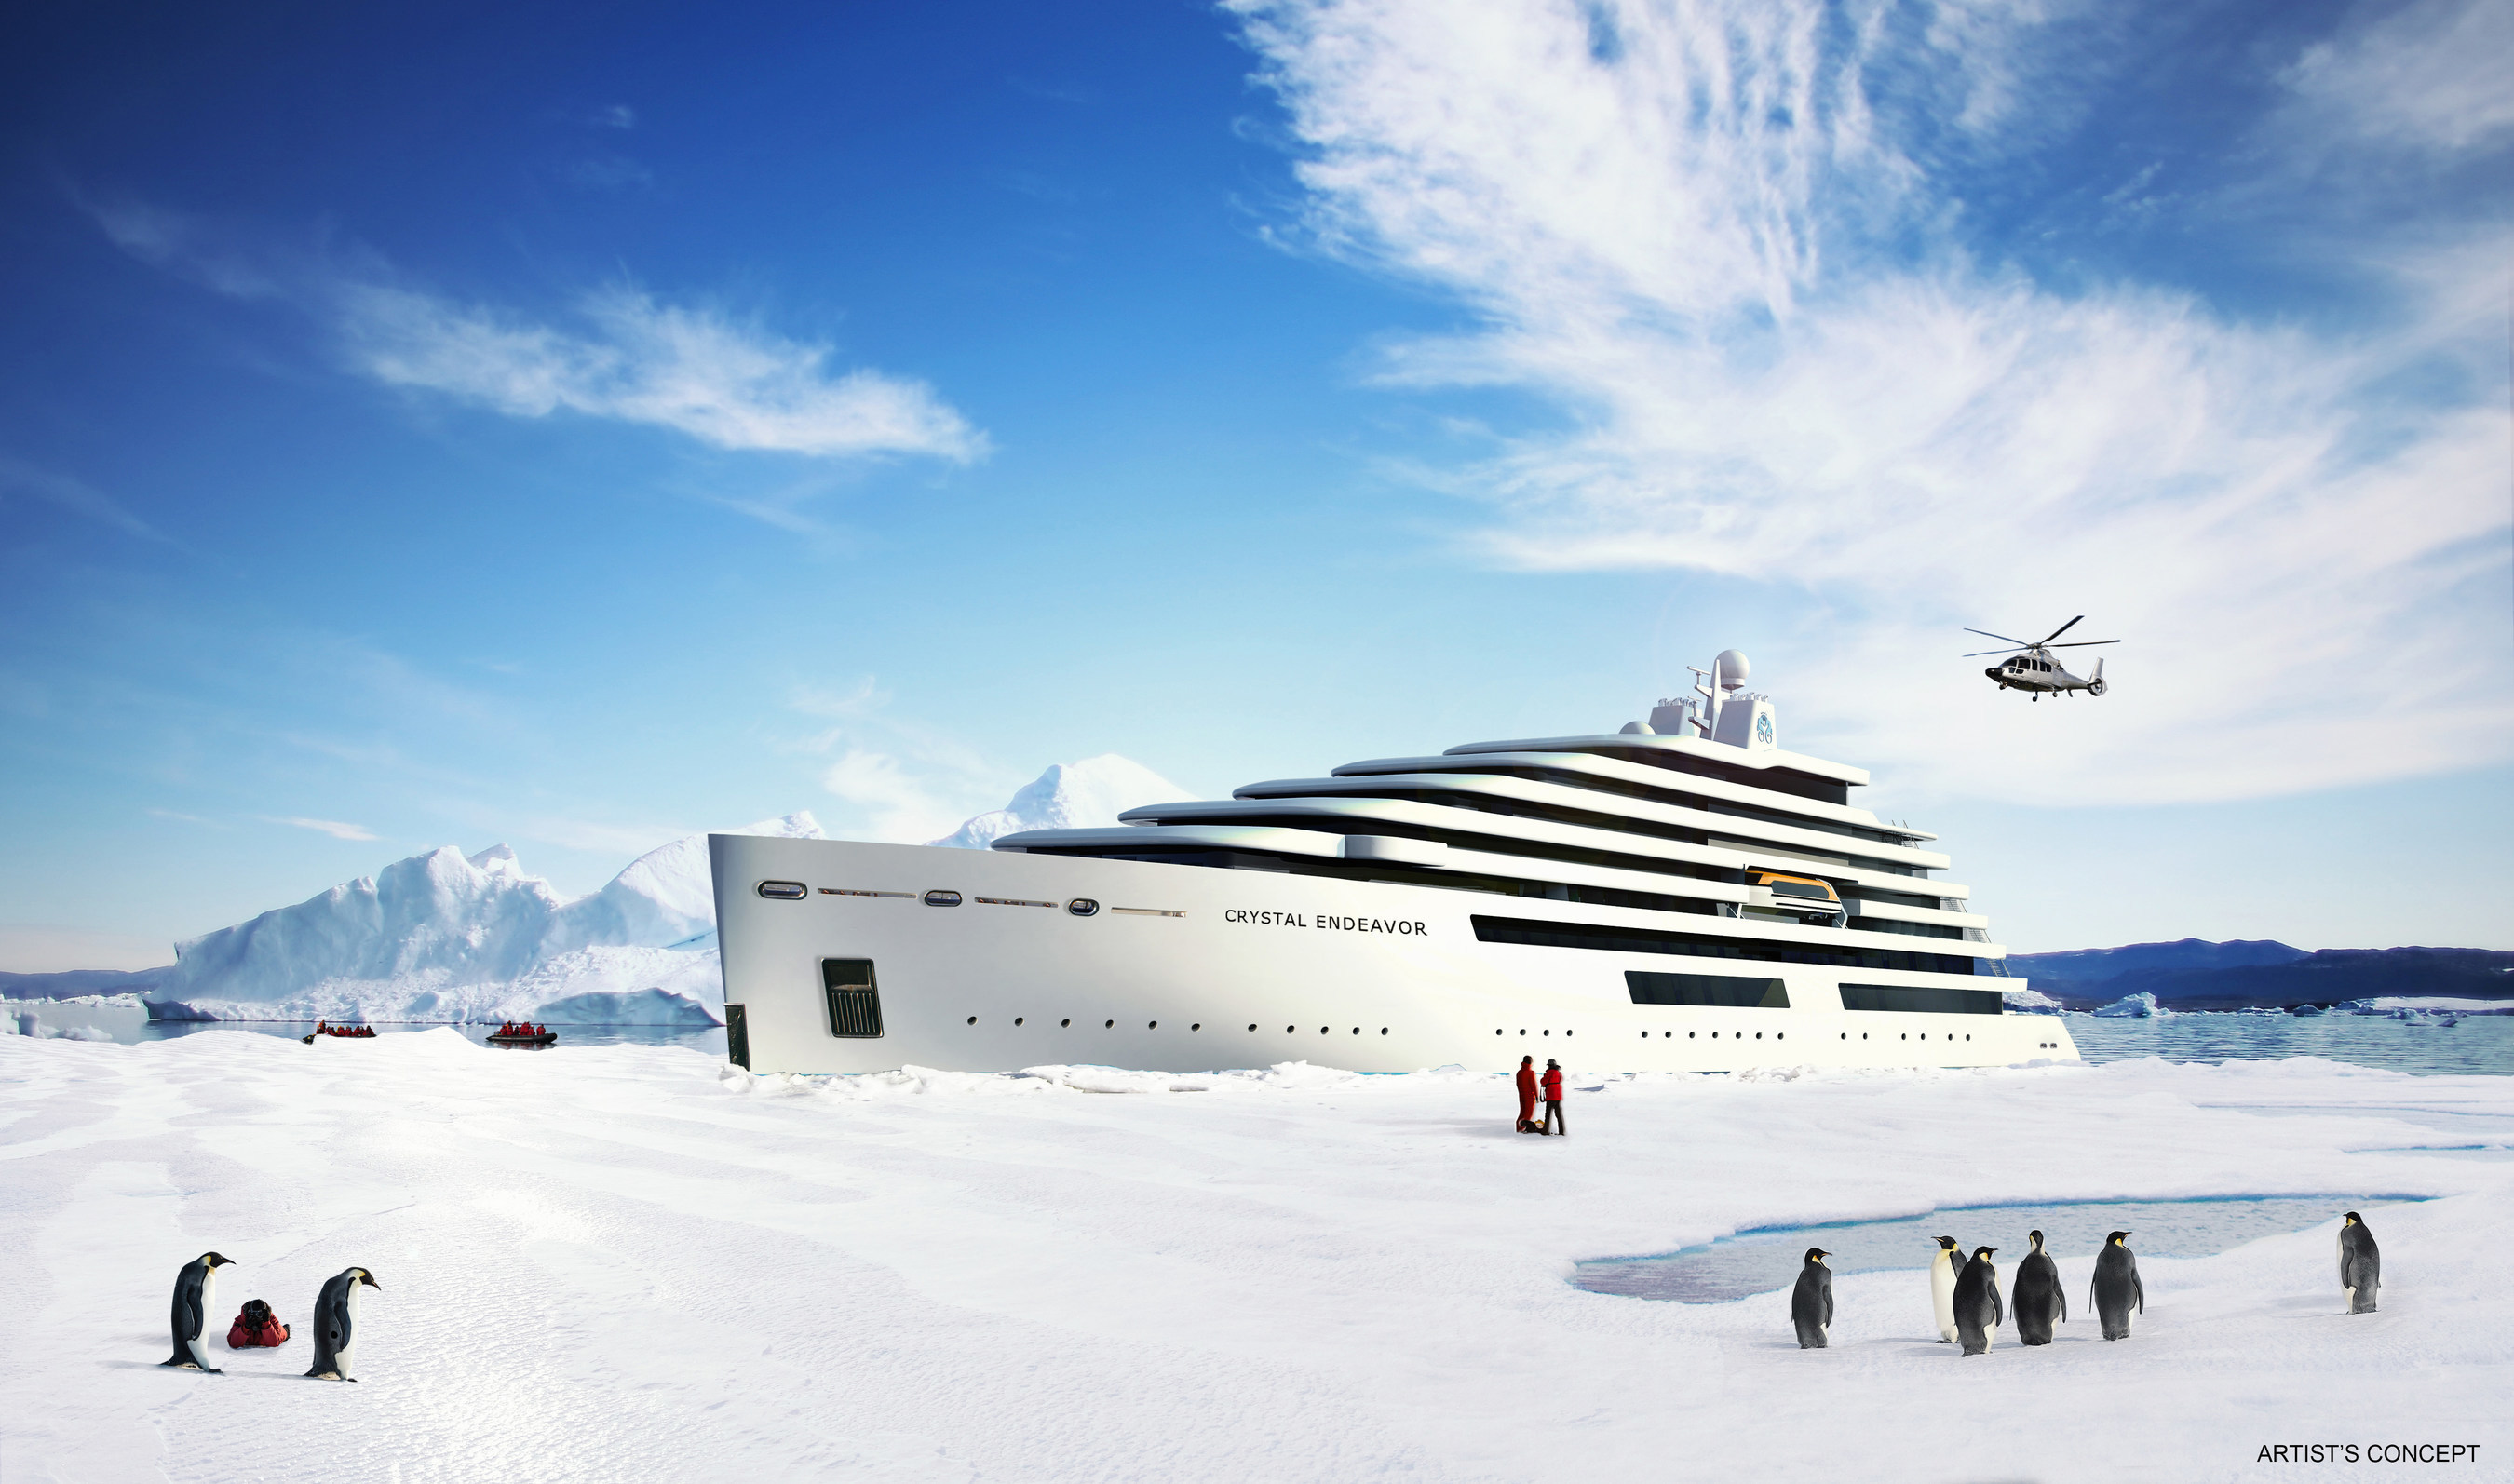 Artist's rendering of the Crystal Endeavor.